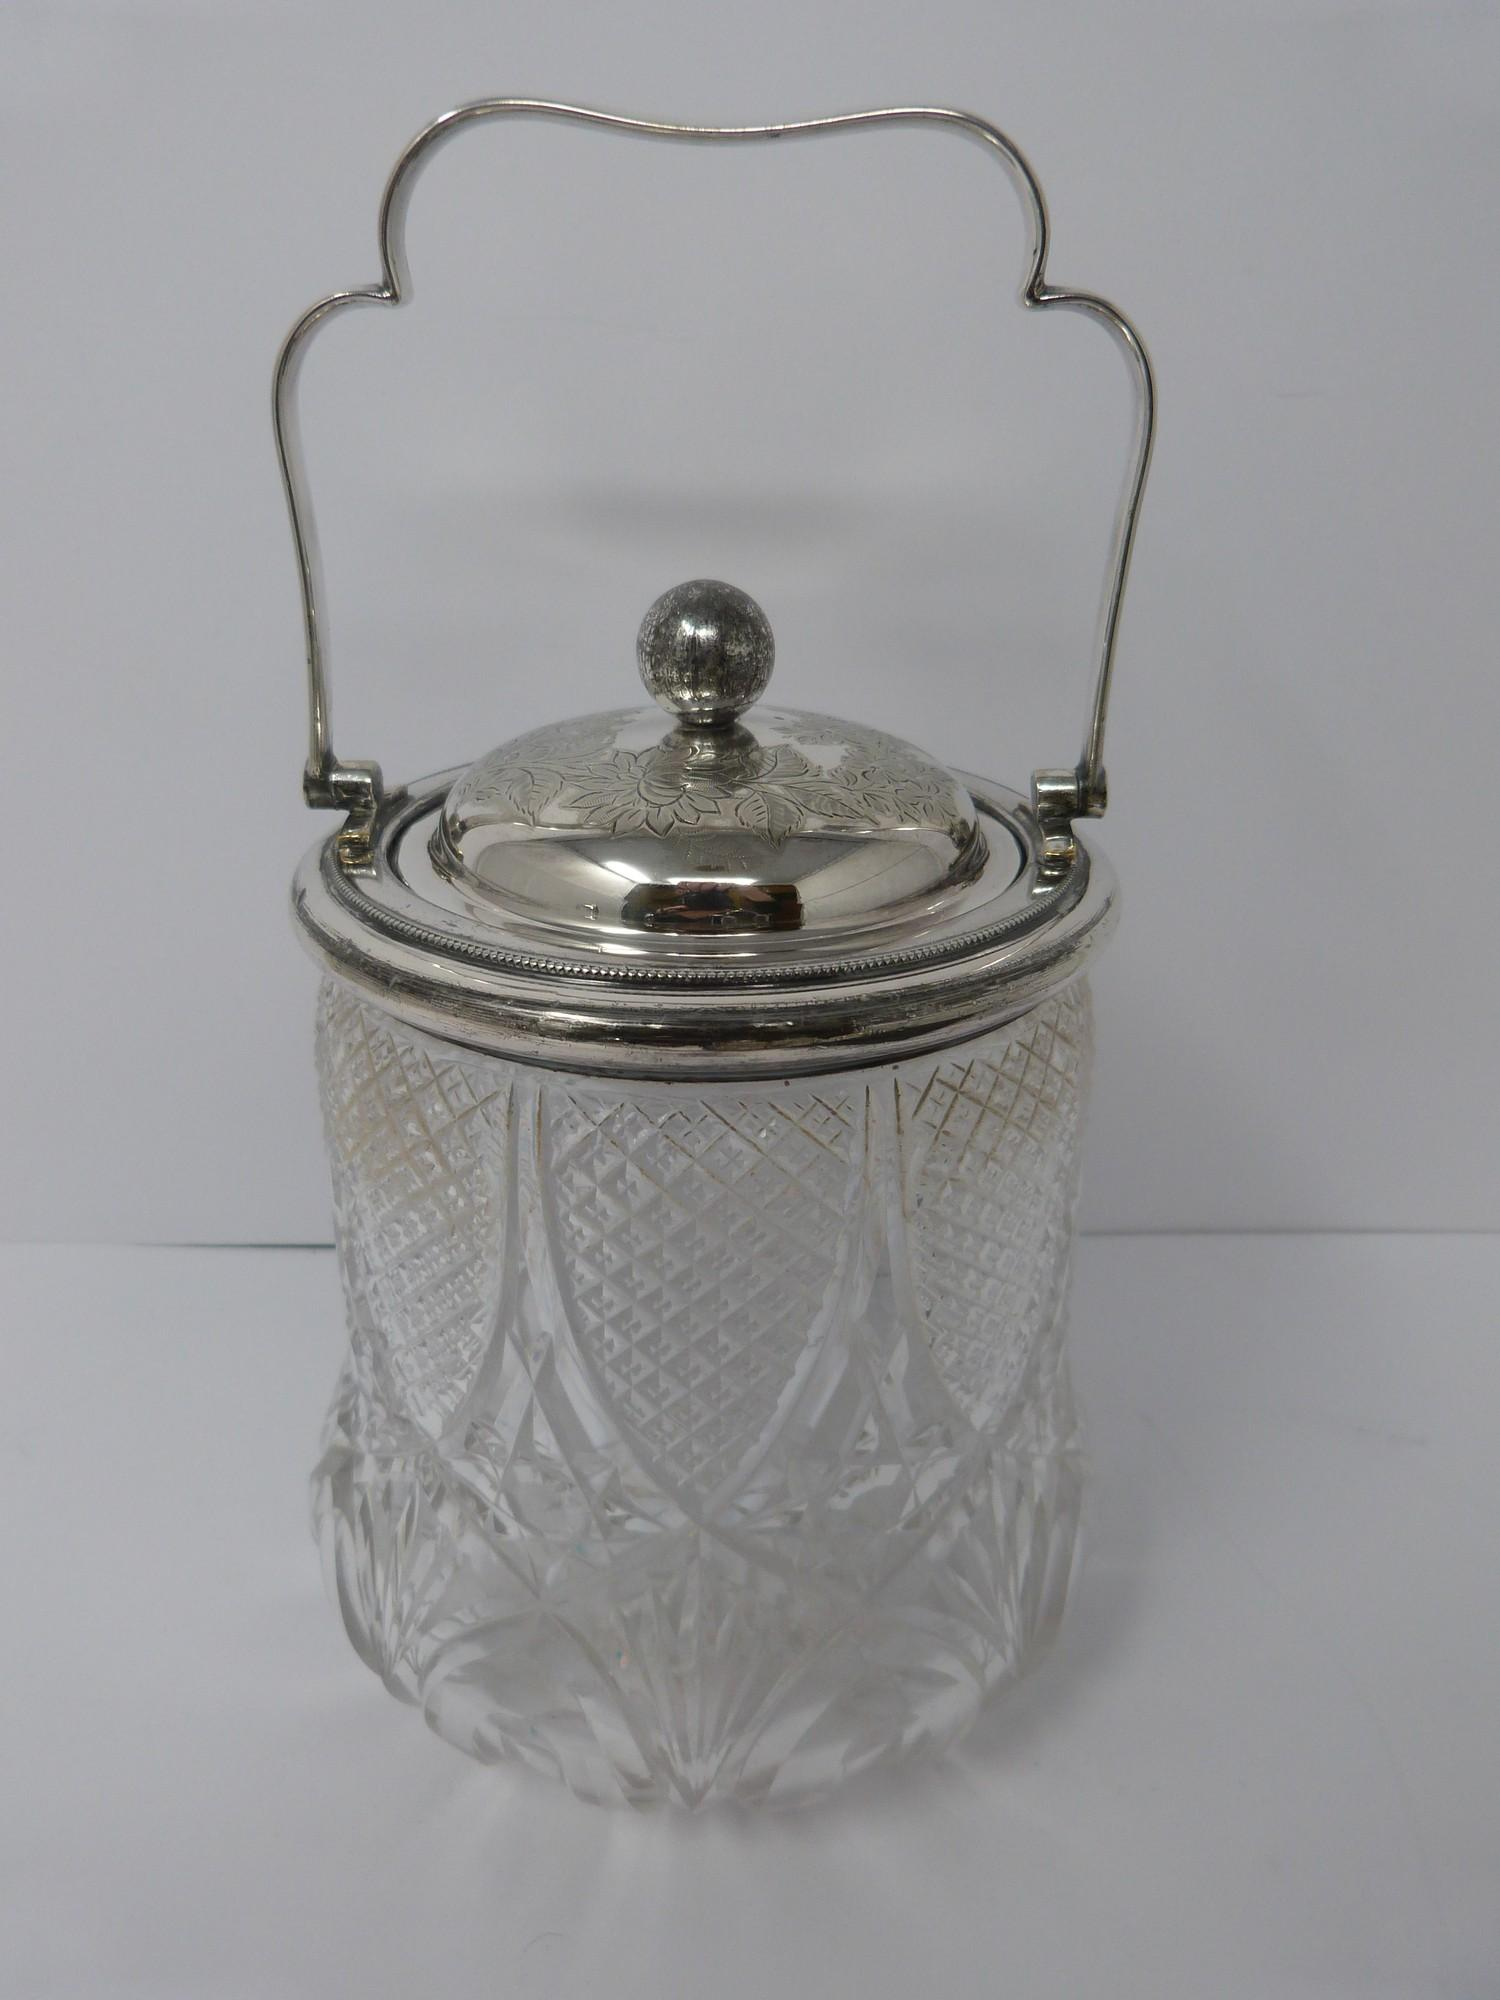 Collection of silver plate including, cruet, cut glass buiscuit barrel, cased butter and cut glass - Image 7 of 7